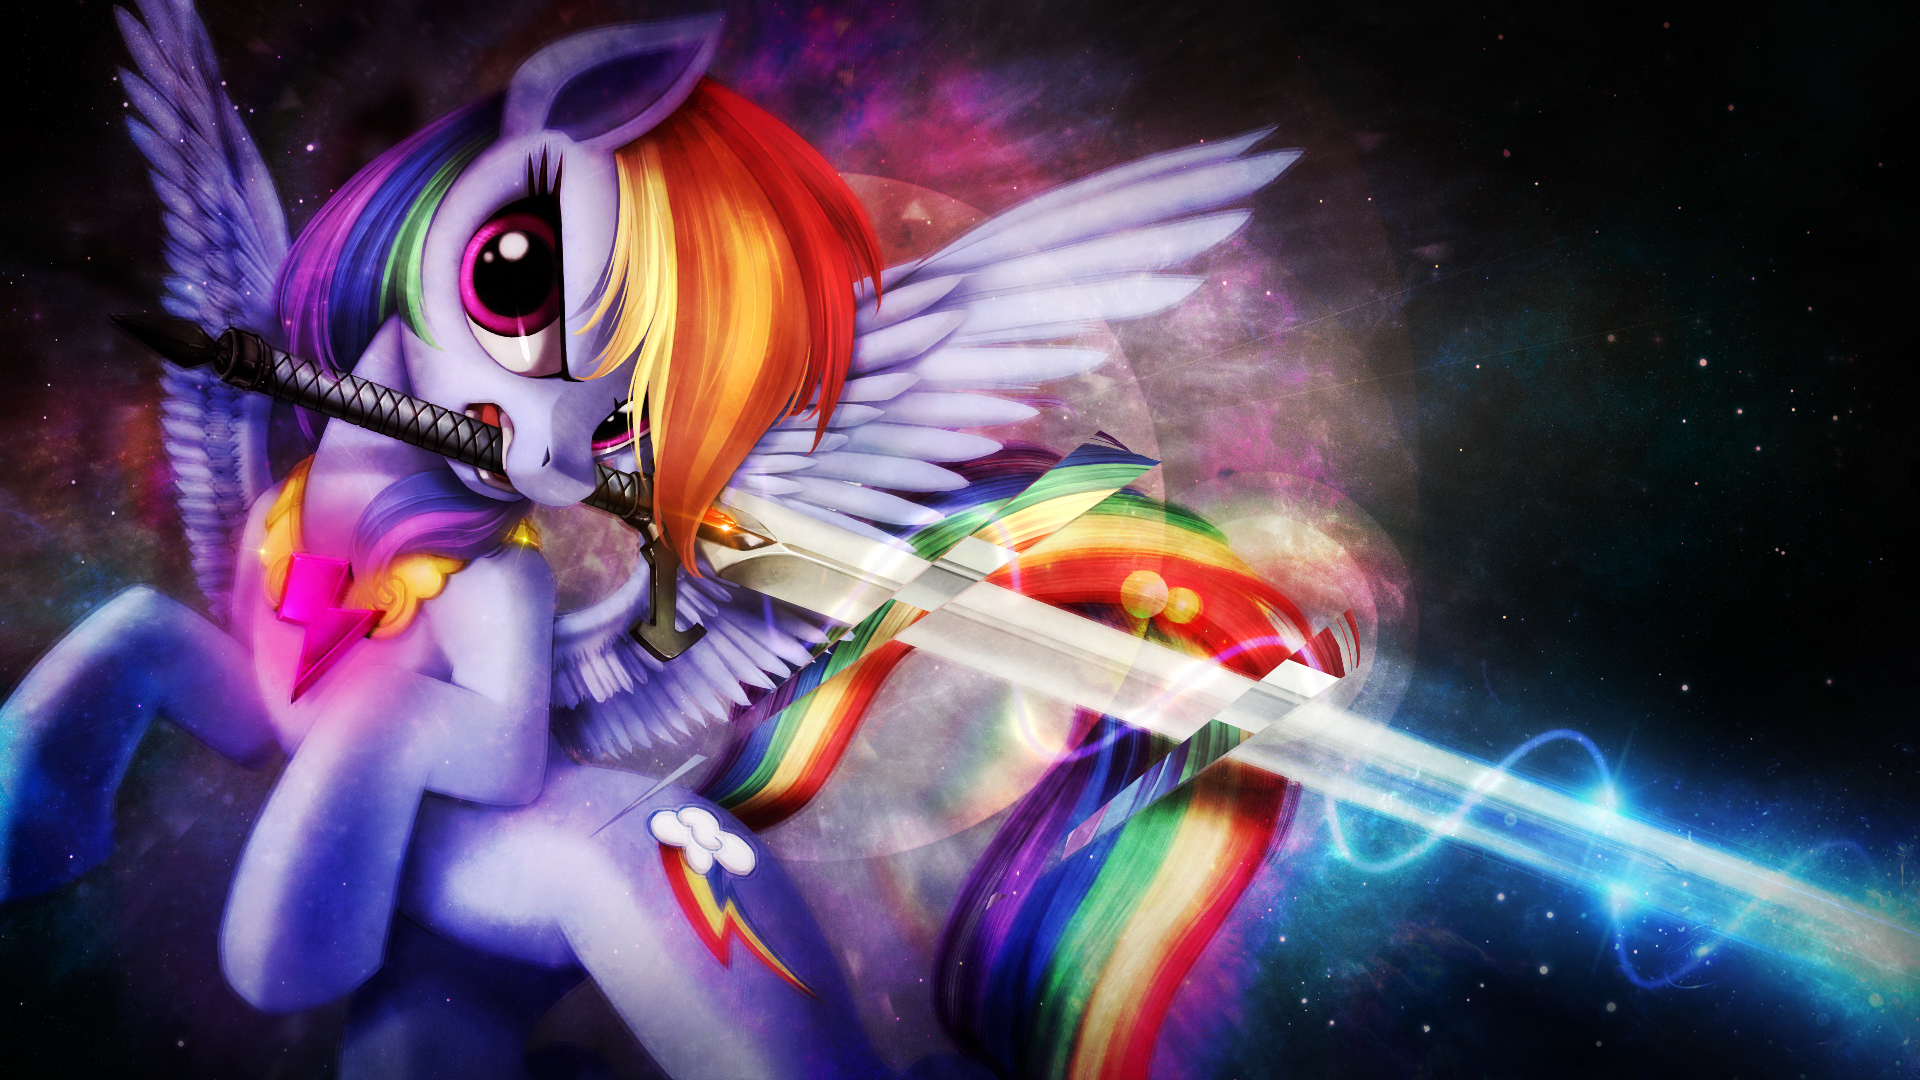 Wallpaper Collab Trashed image   Bronies of Moddb   Indie DB 1920x1080